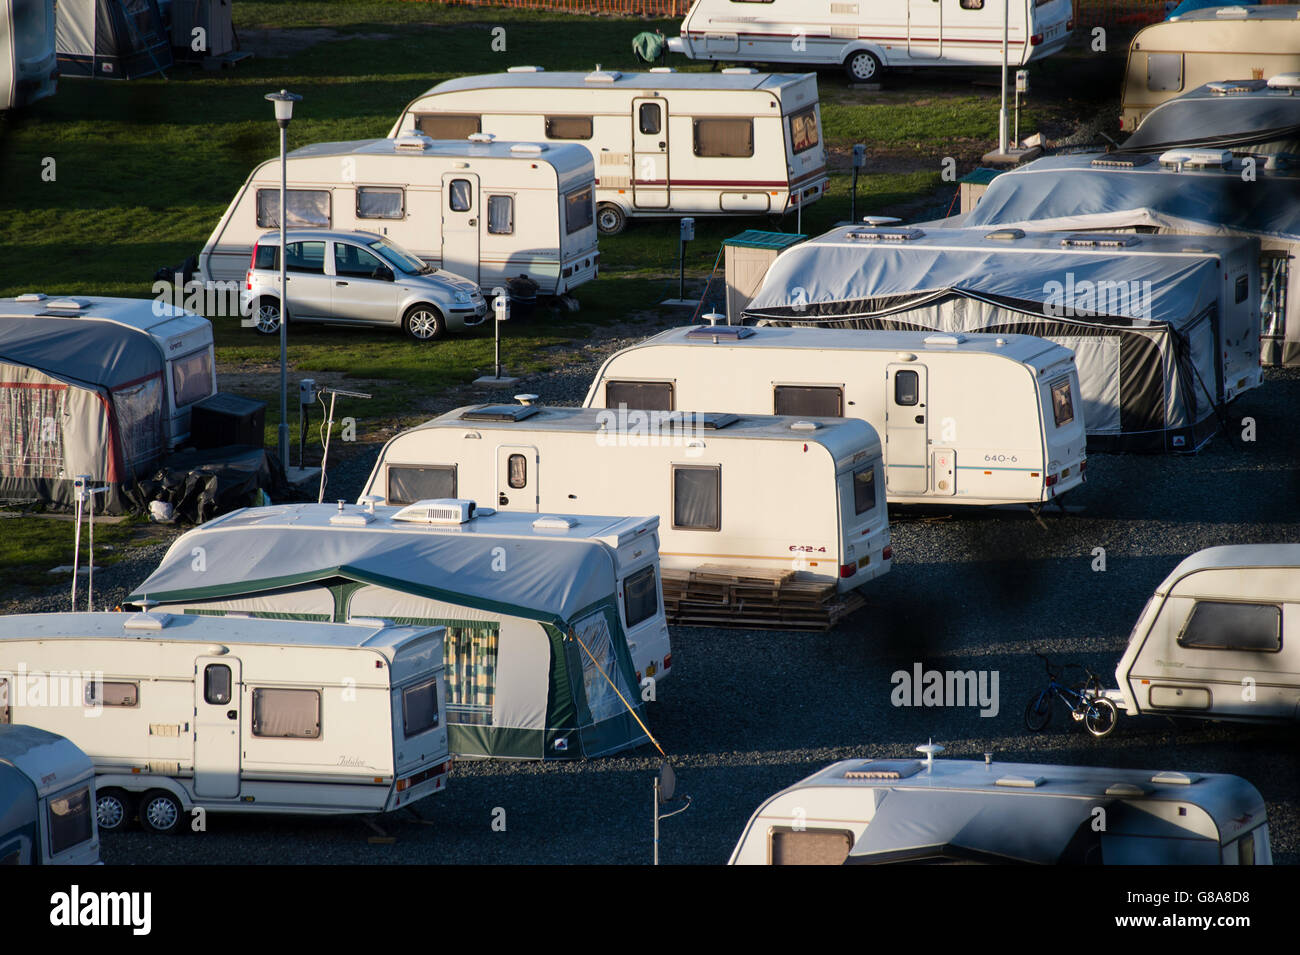 Rows of touring caravans with awnings parked up on a summer evening at the Ystwyth Caravan and Campsite, Aberystwyth - Stock Image